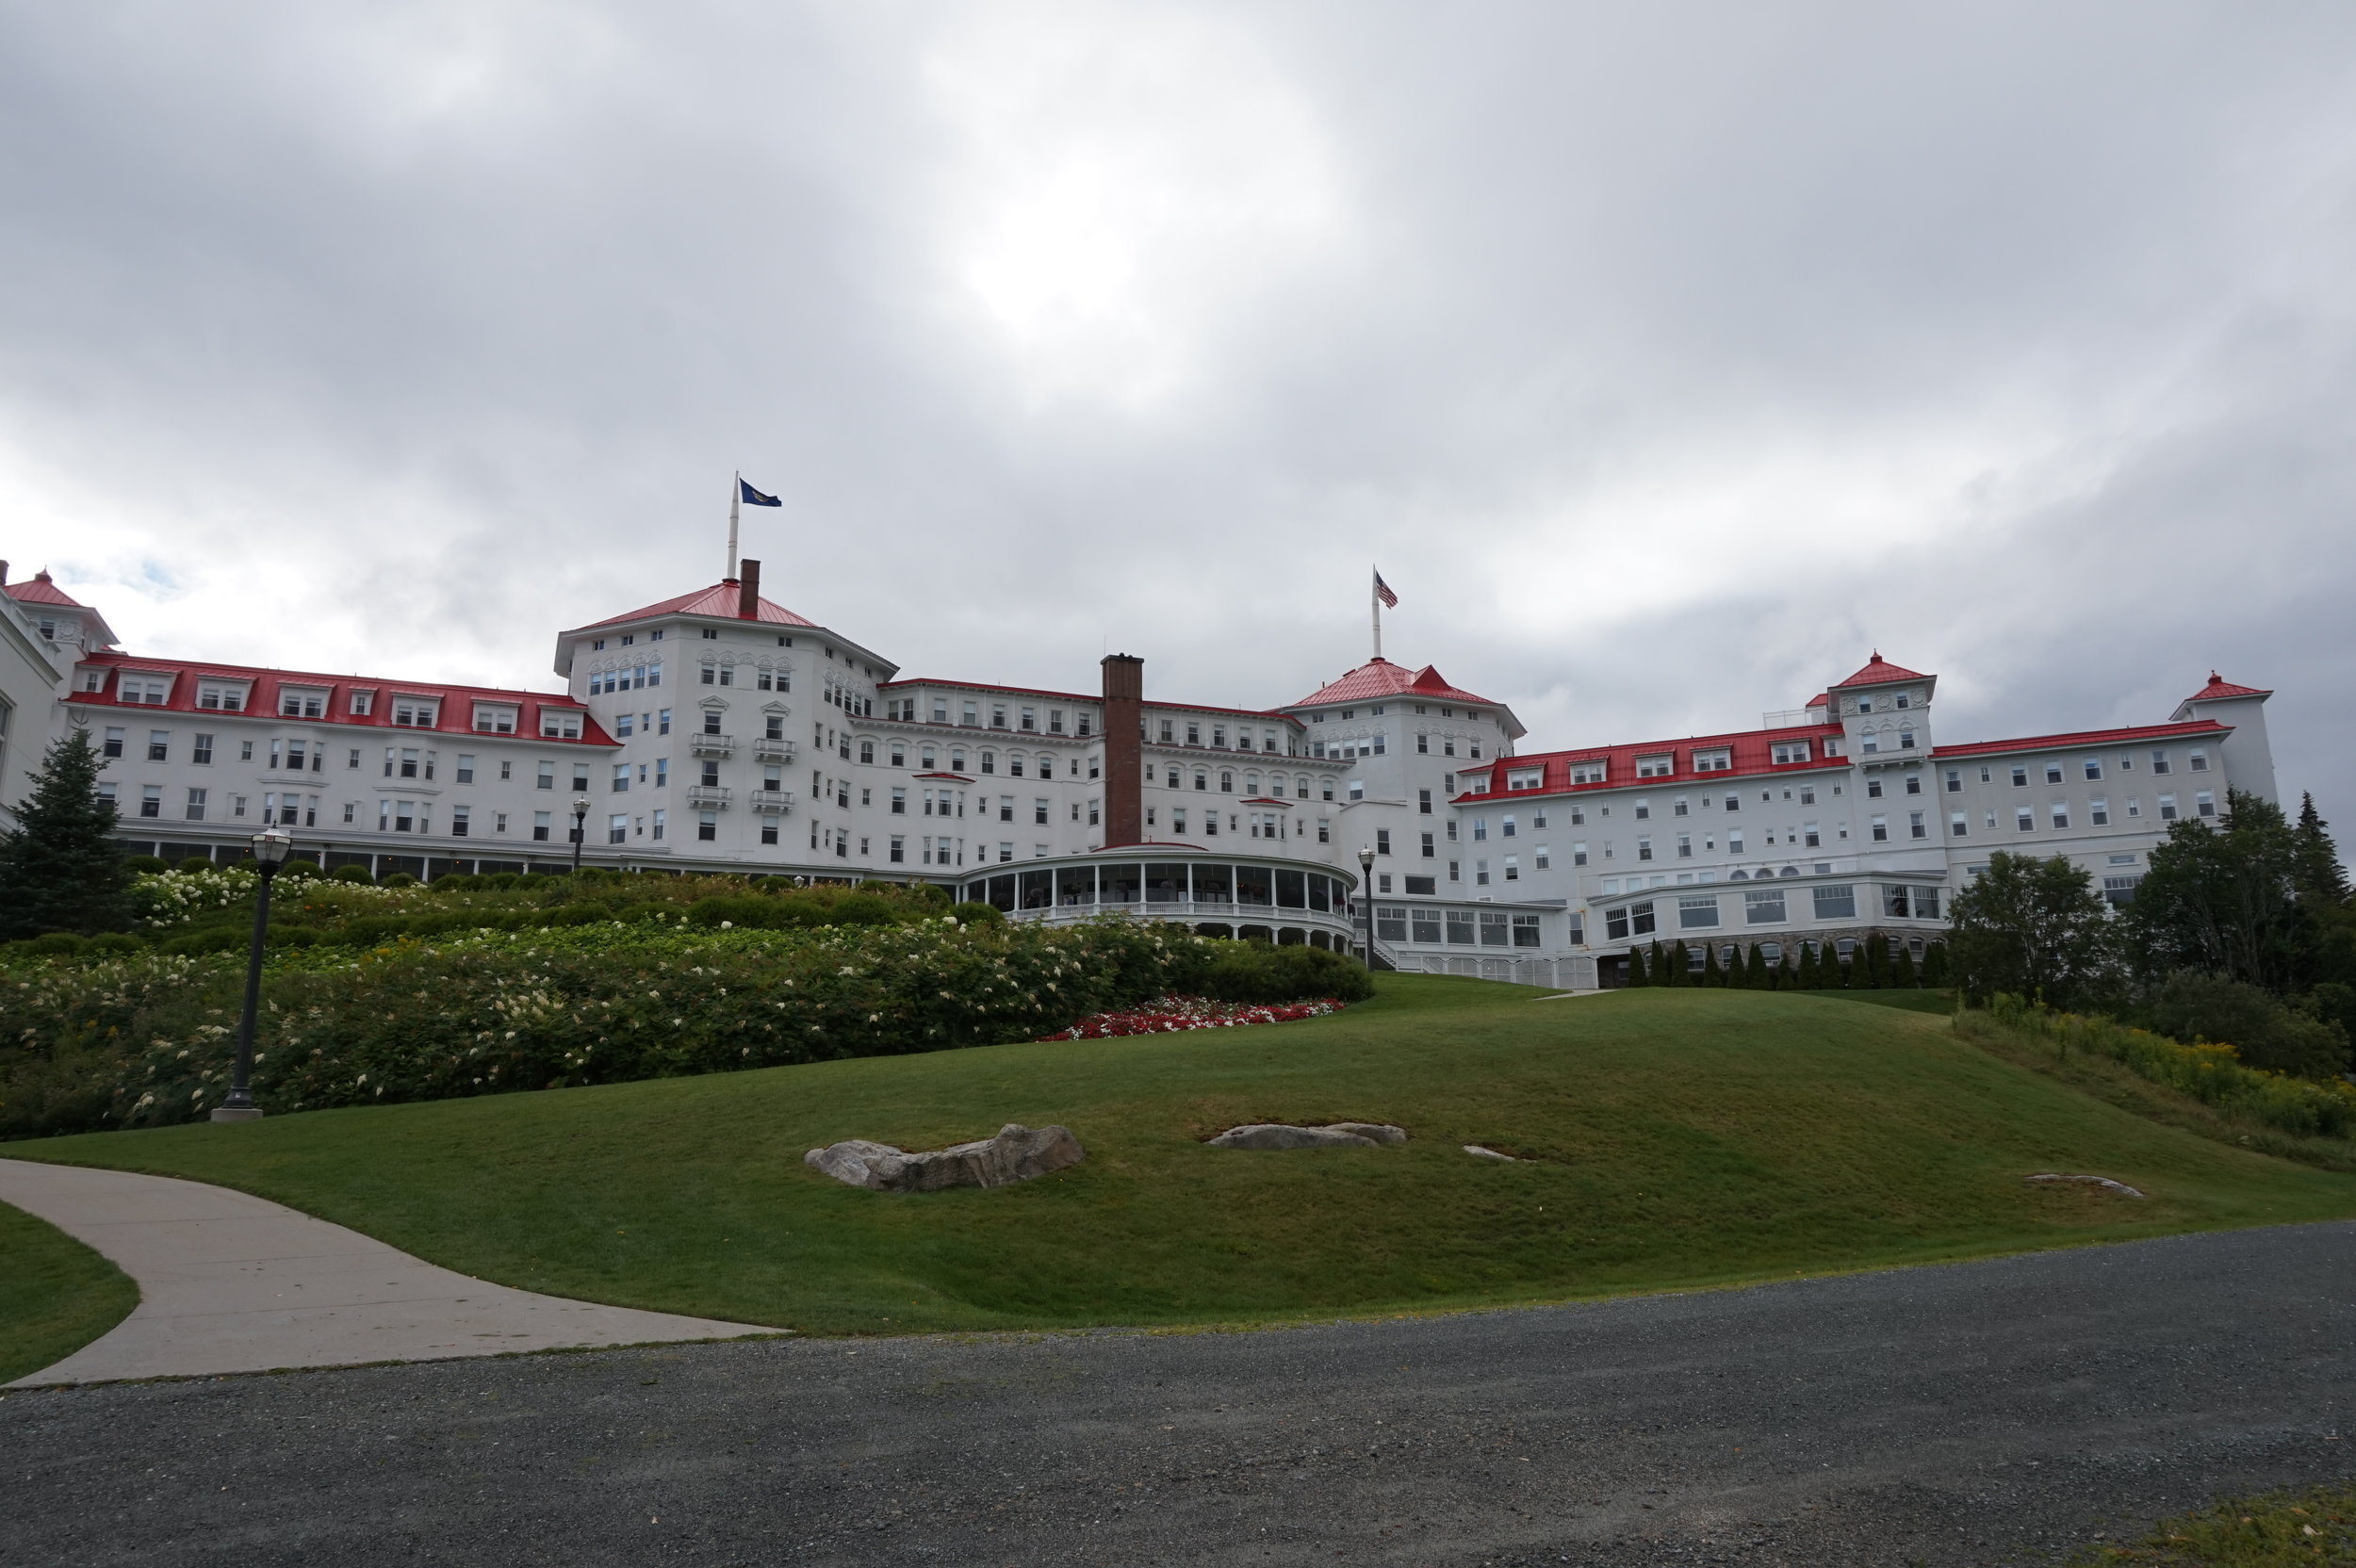 The back of the hotel.